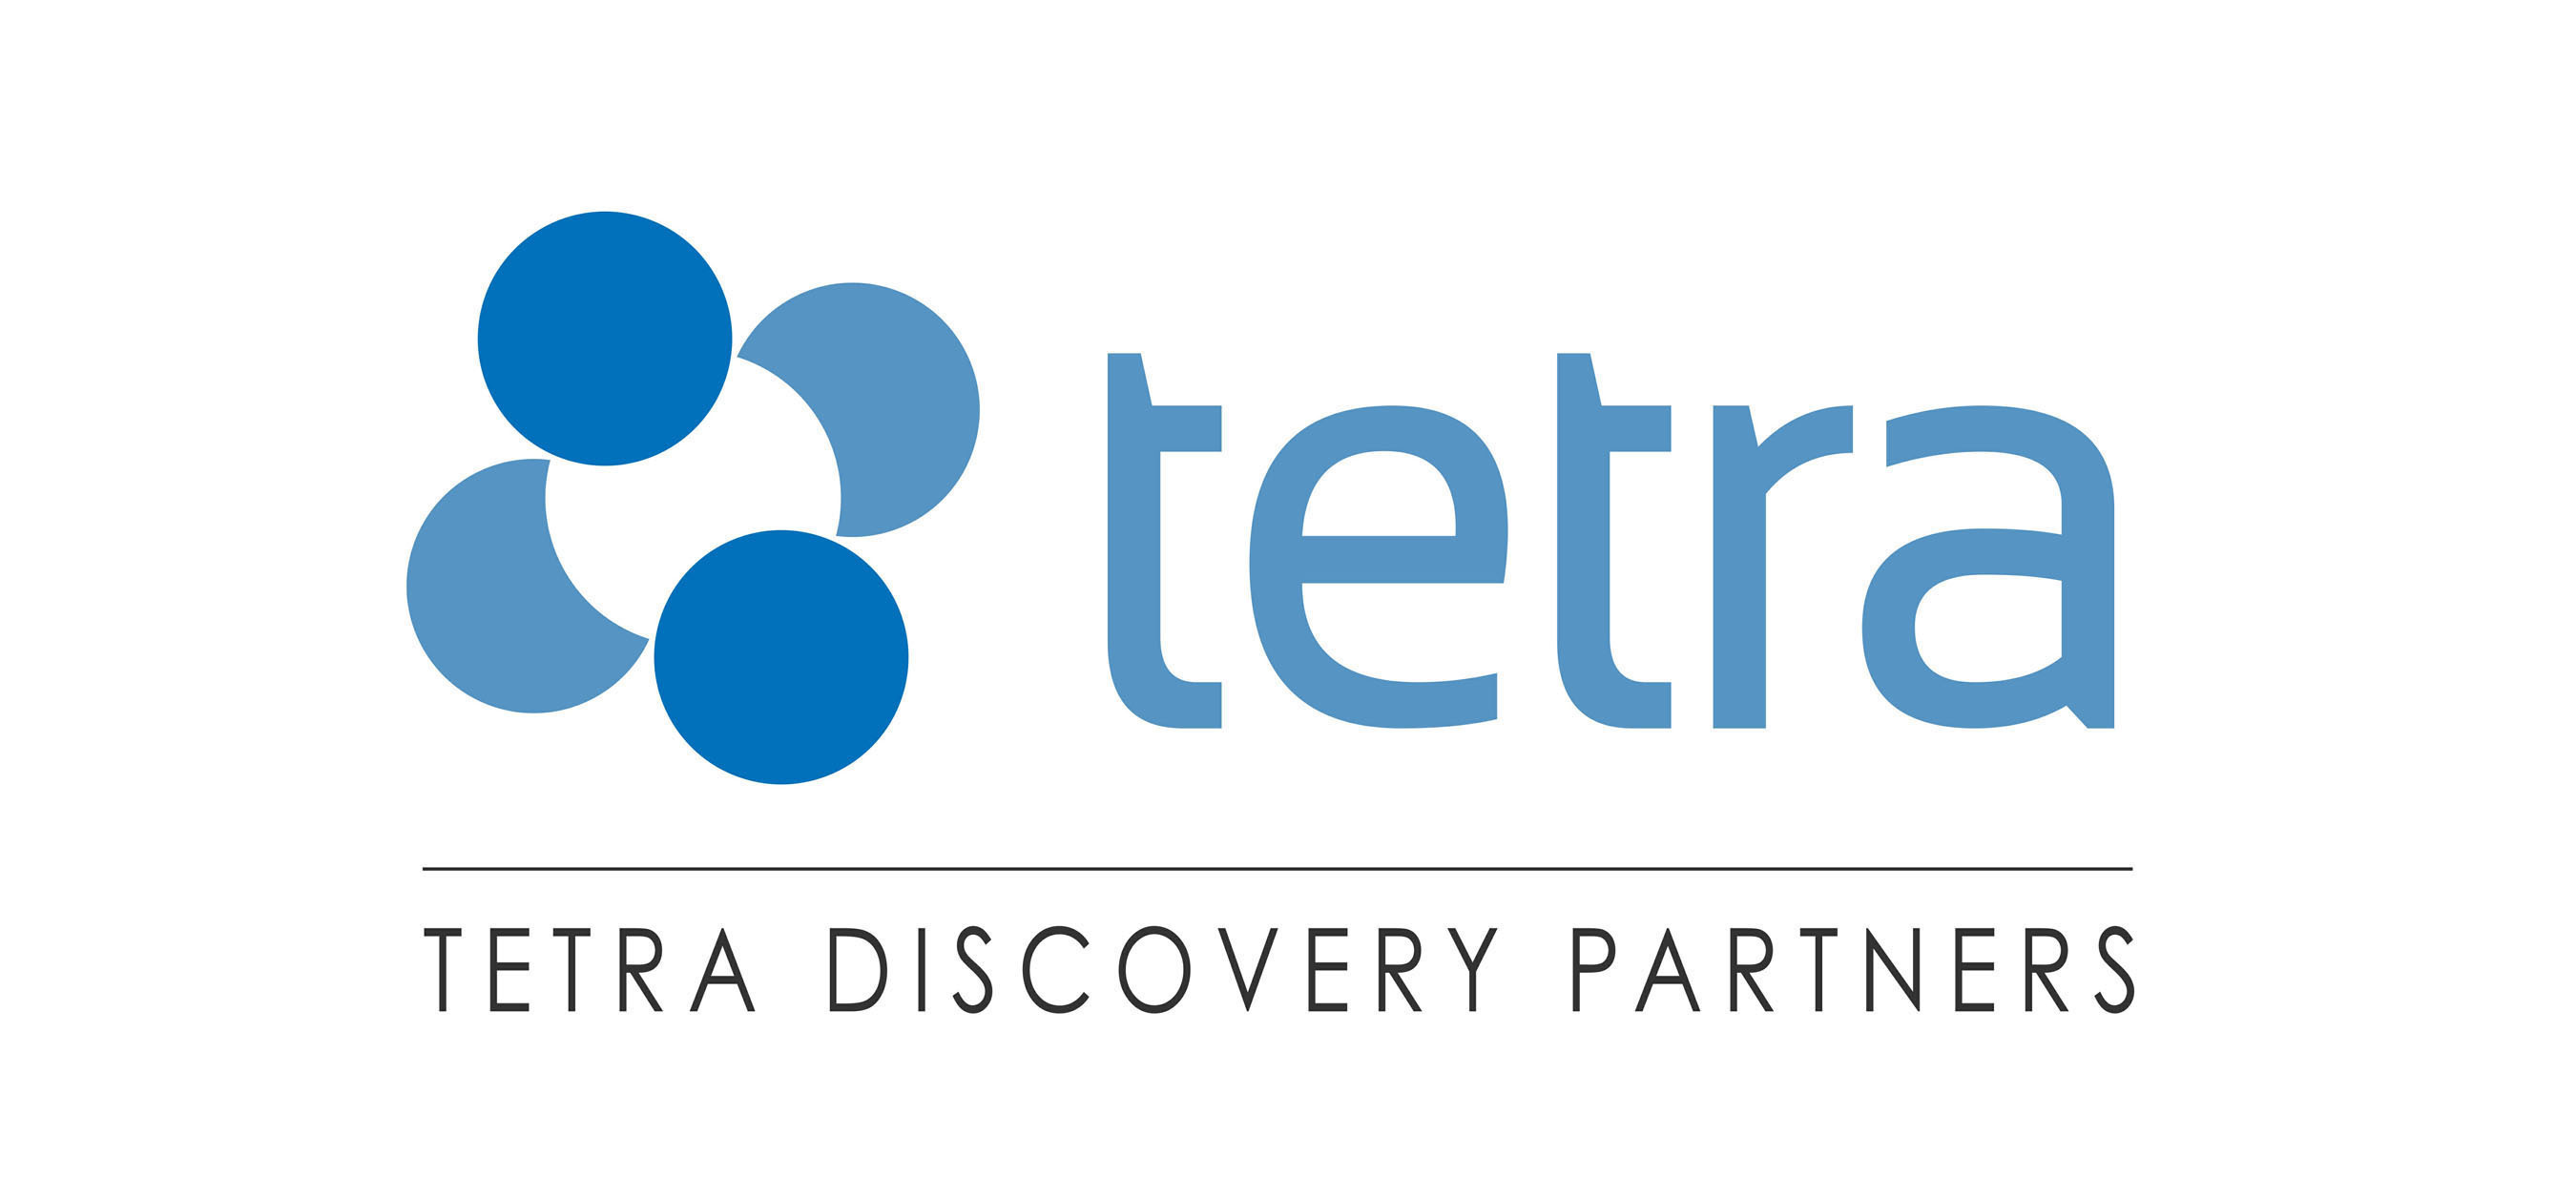 Tetra discovery advances alzheimers treatment candidate bpn14770 to tetra discovery partners llc malvernweather Image collections